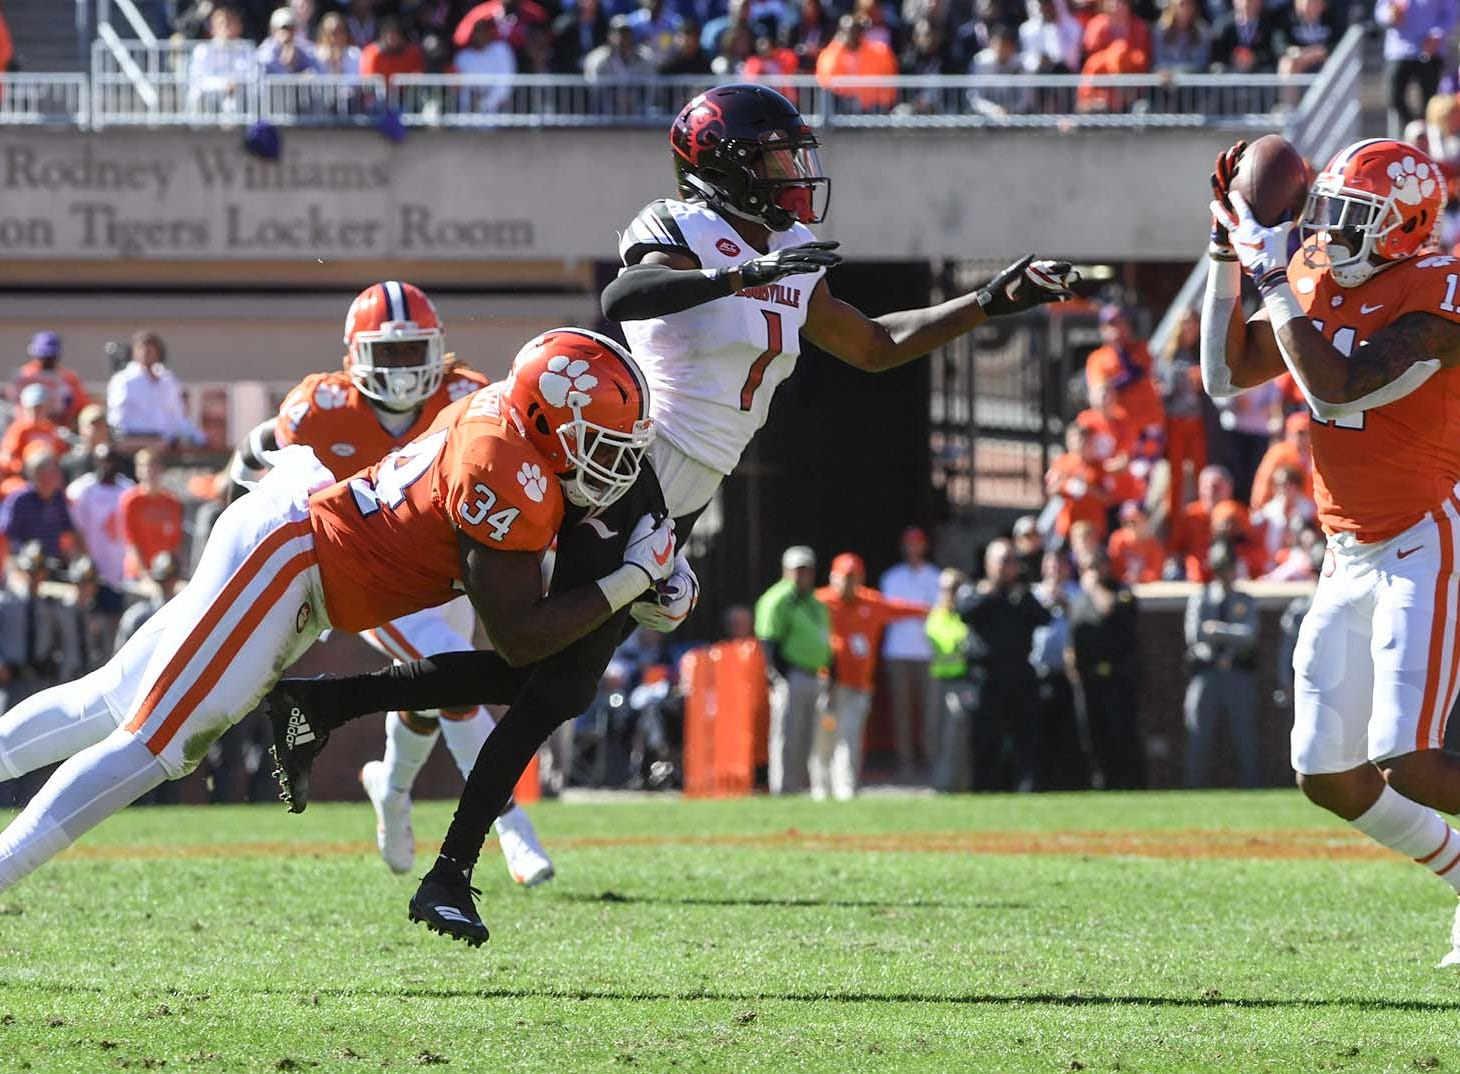 Clemson linebacker Kendall Joseph (34) hits Louisville wide receiver Chatarius Atwell(1) as Clemson safety Isaiah Simmons (11) intercepts the ball and runs it 27-yards for a touchdown during the second quarter in Memorial Stadium on Saturday, November 3, 2018.